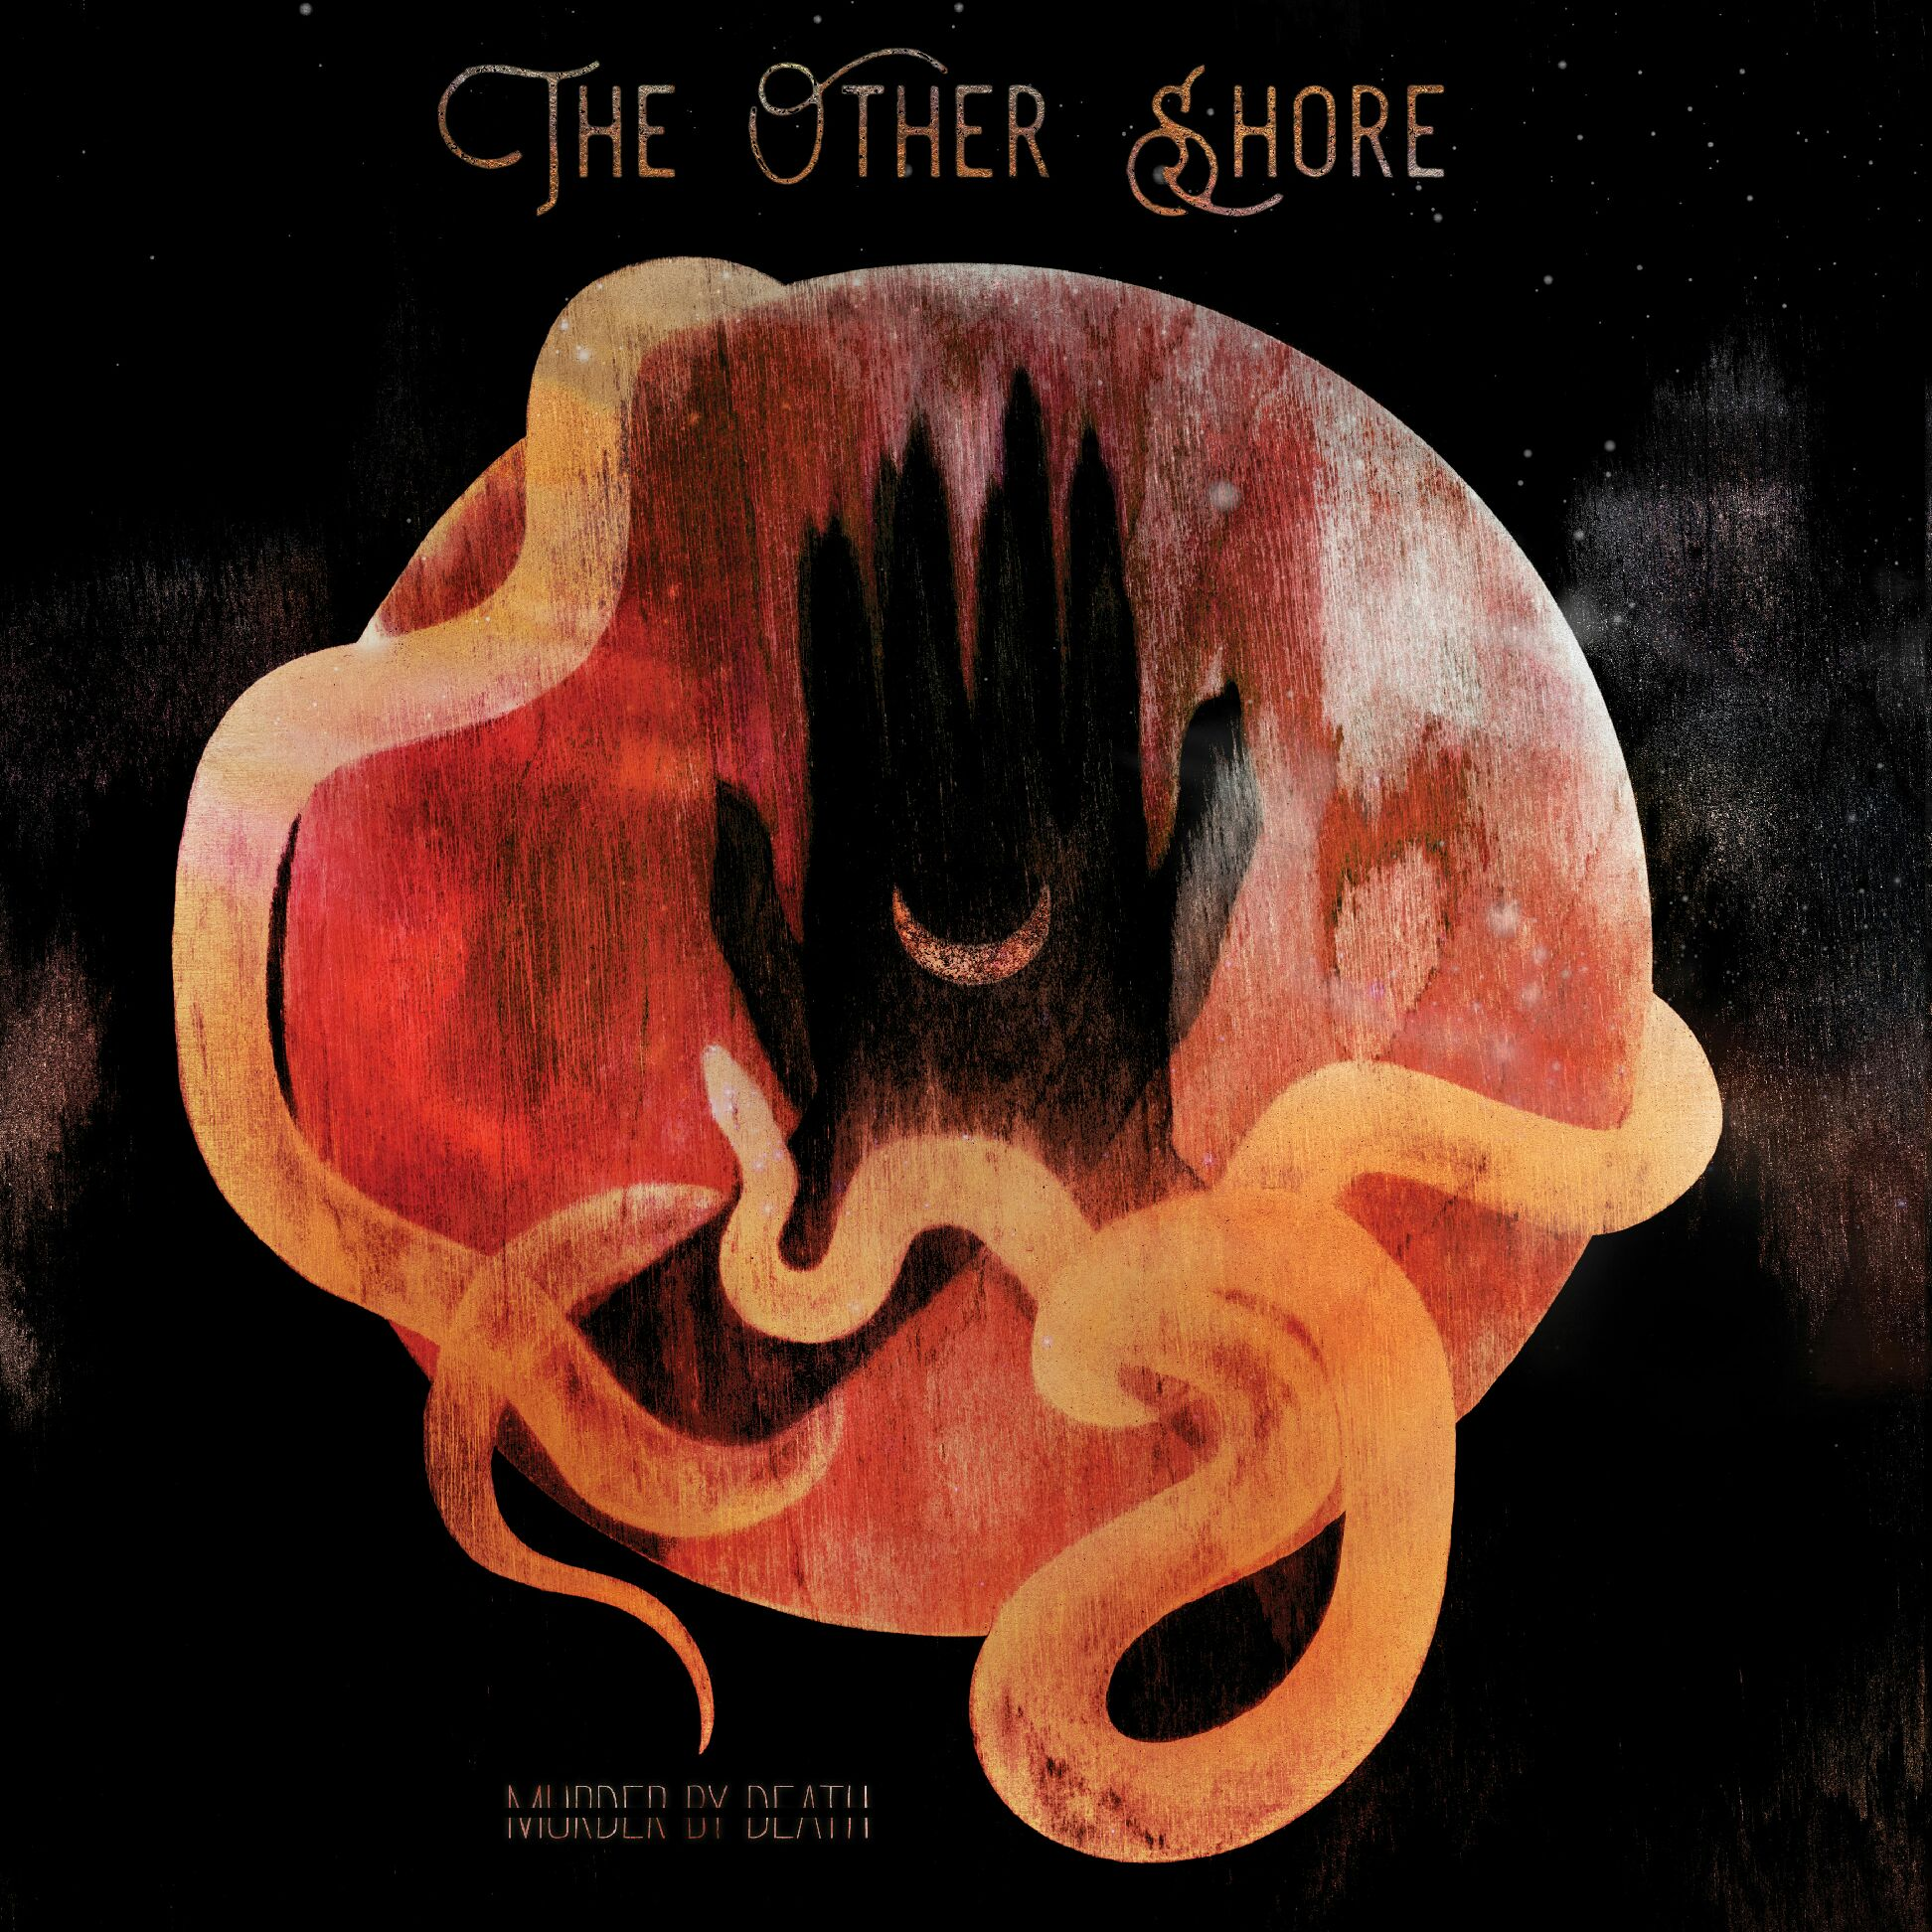 Murder By Death - The Other Shore - Album Cover Art_1.JPG